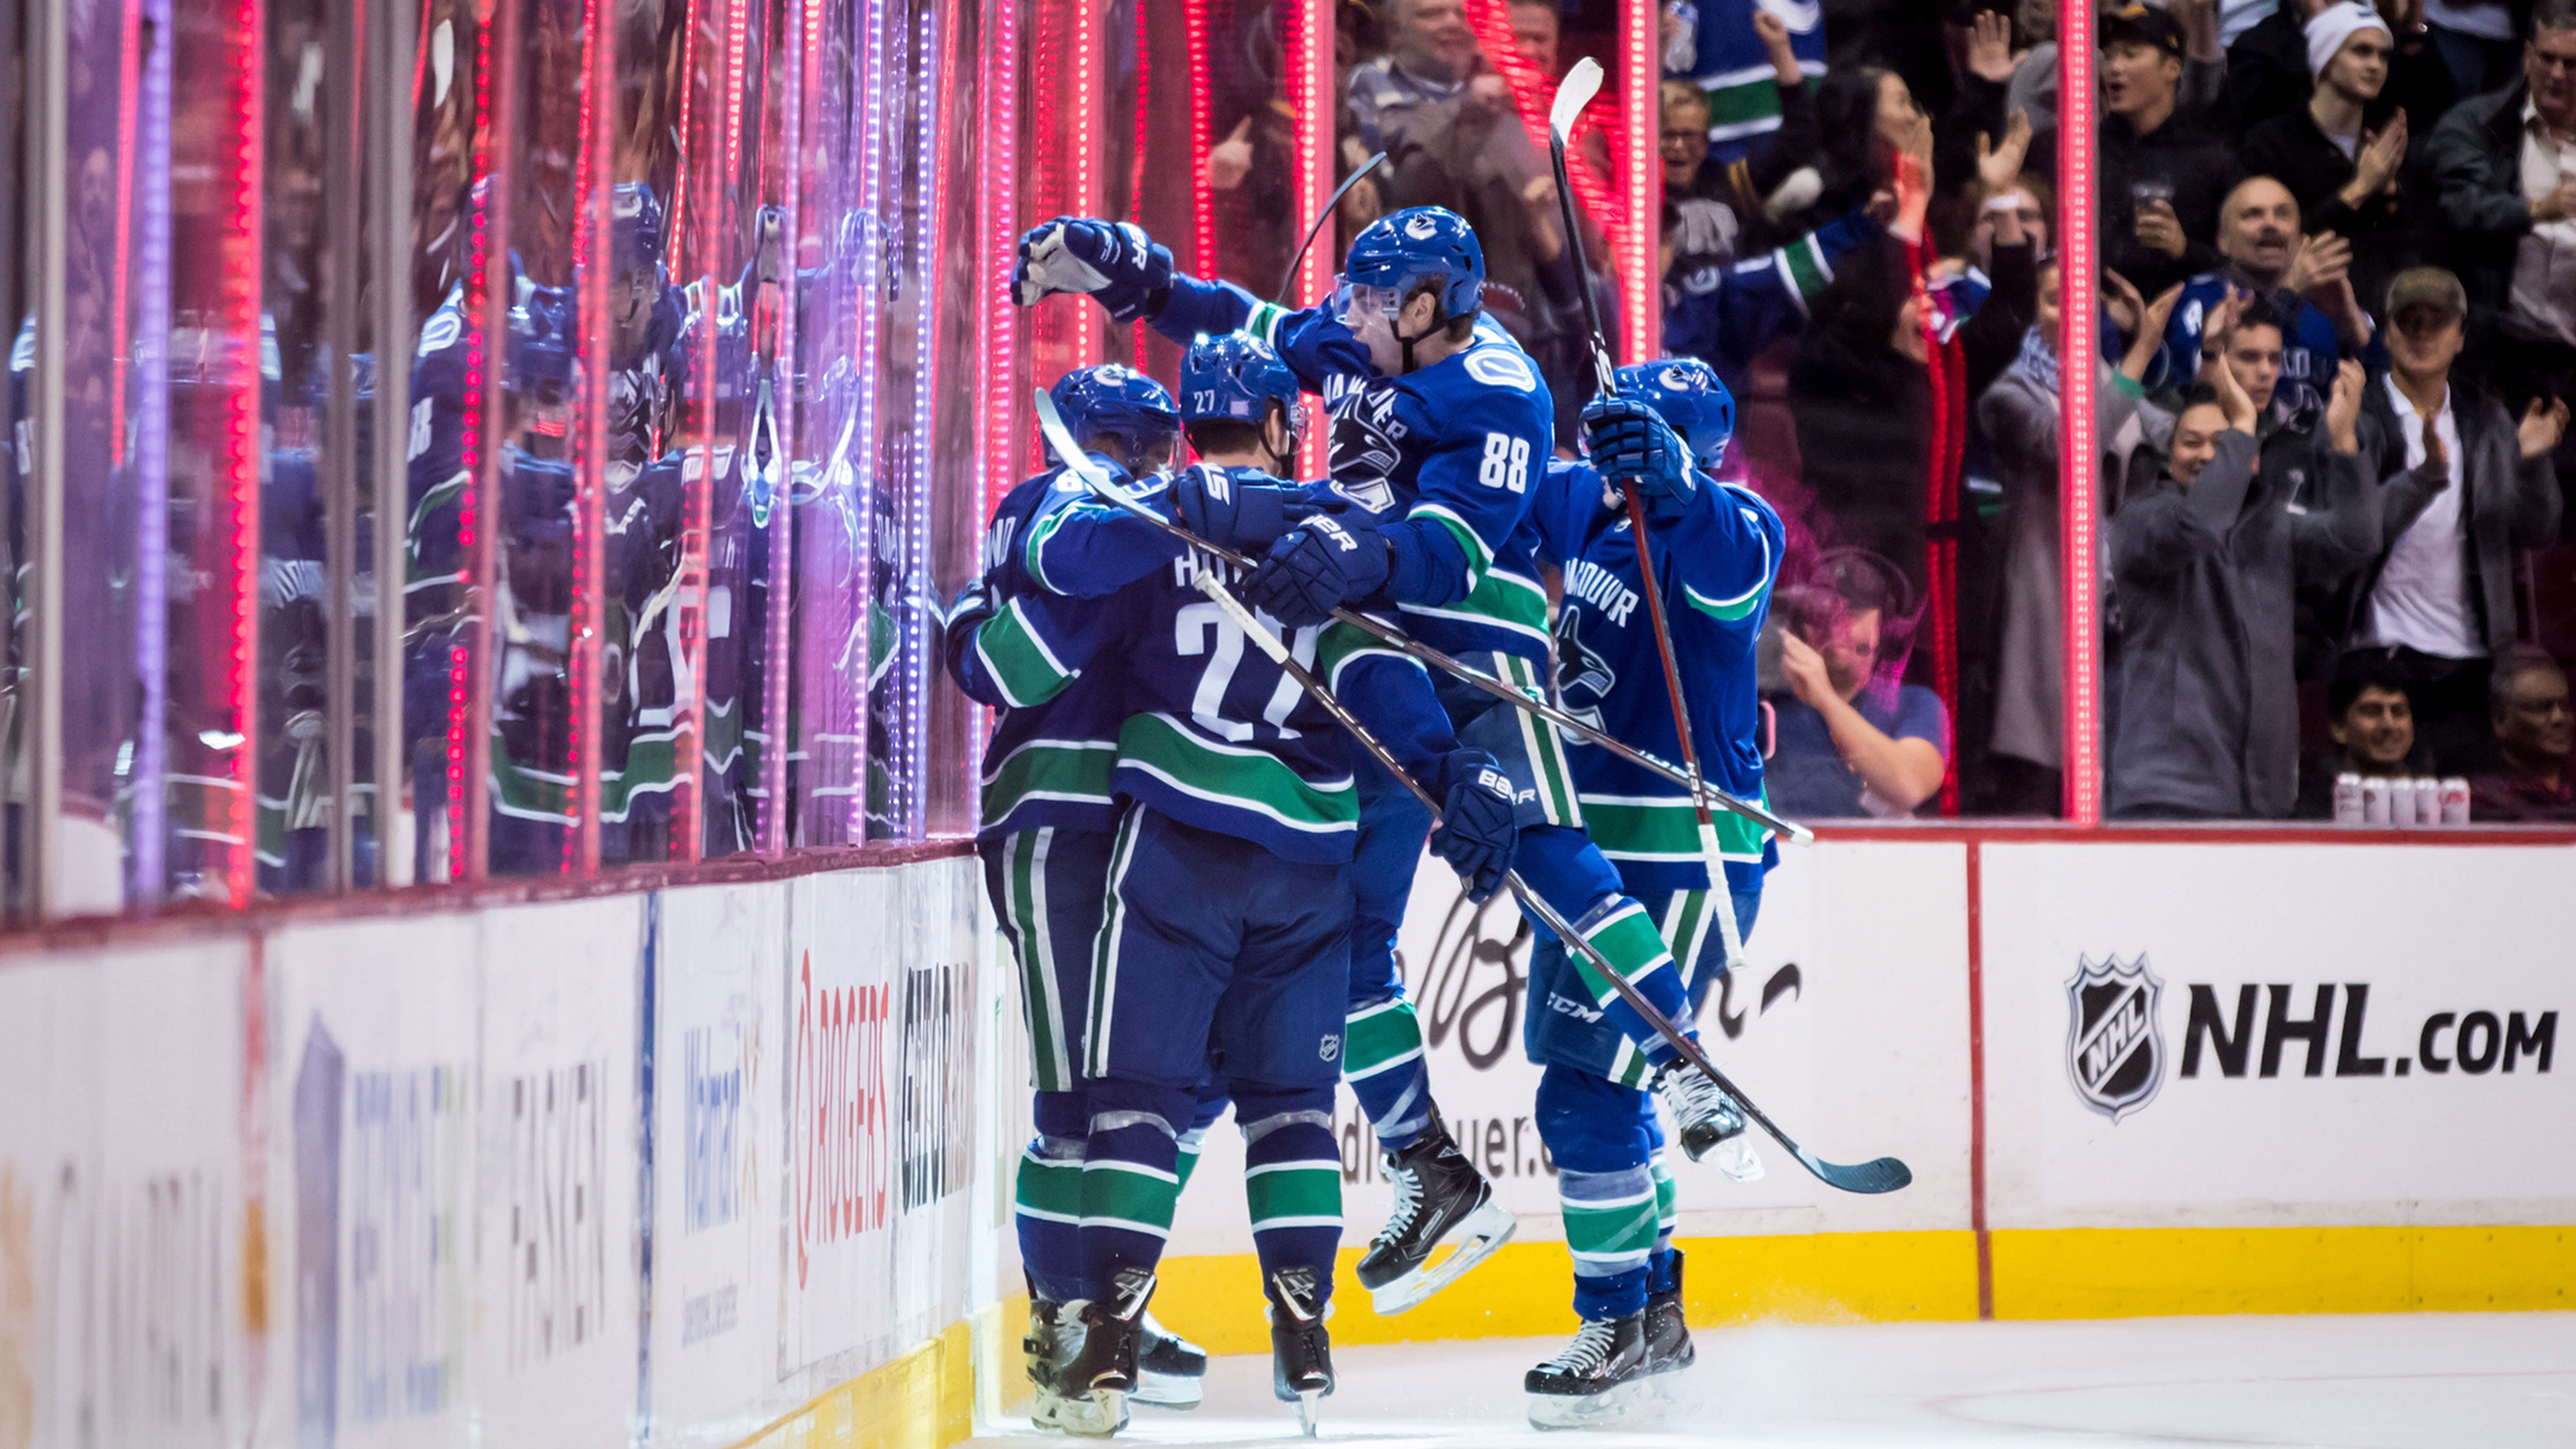 Canucks Get Glimpse Of Future As Sedin-like Pettersson, Boeser Dominate